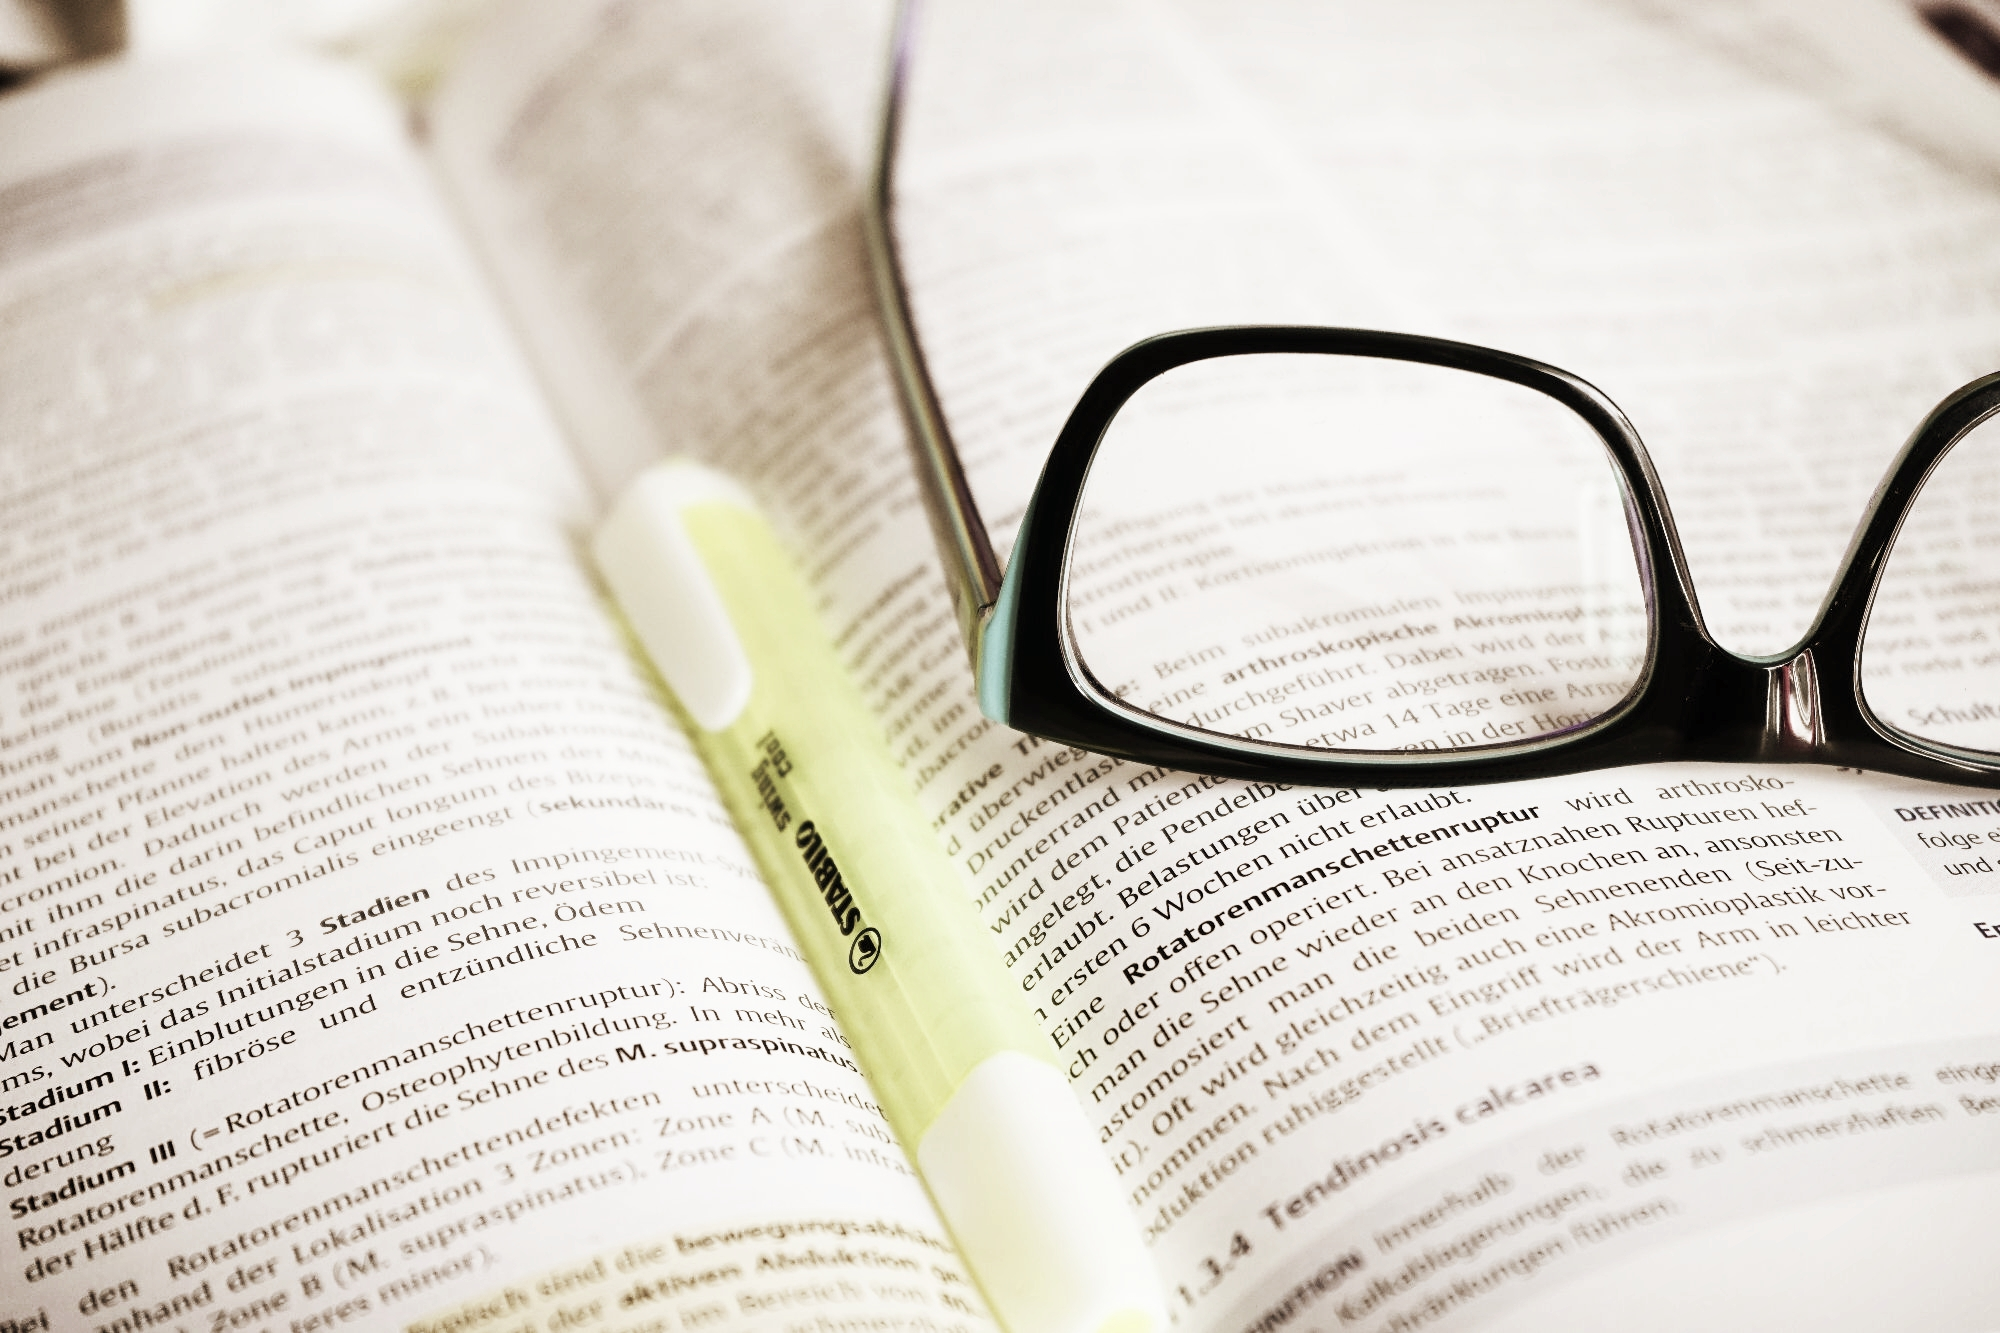 Book, highlighter, glasses